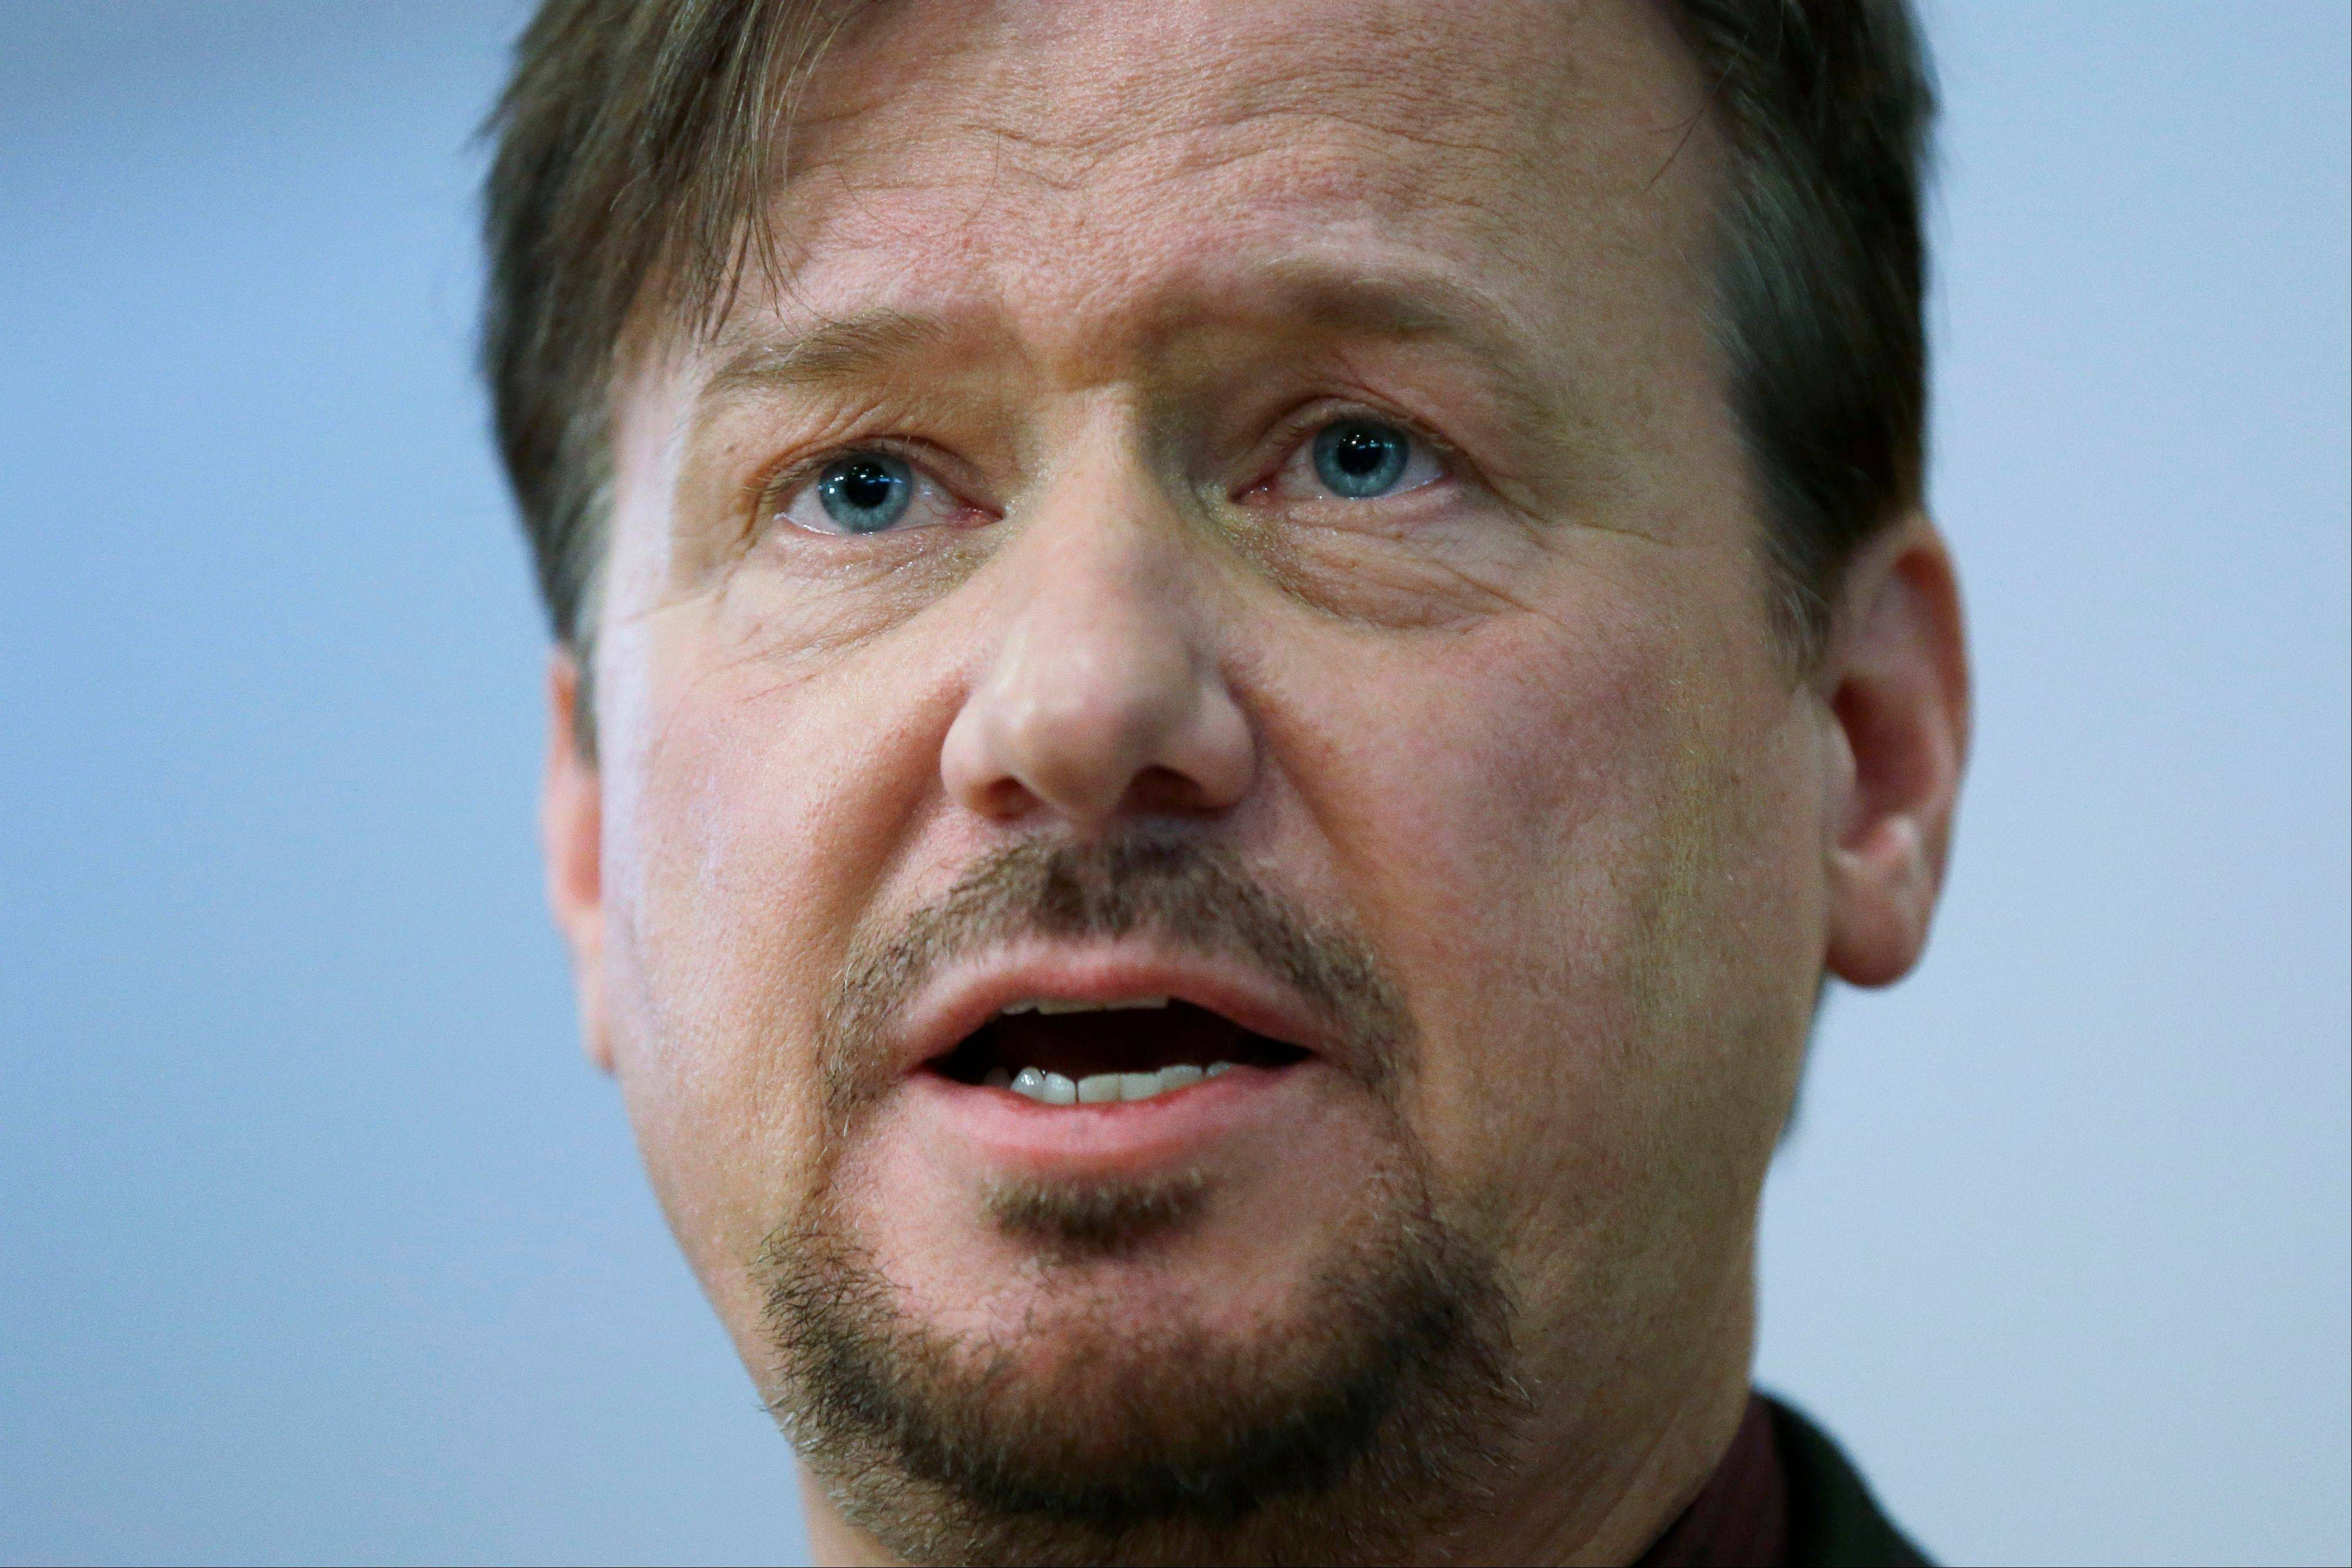 The Rev. Frank Schaefer, a United Methodist clergyman convicted of breaking church law for officiating at his son's same-sex wedding, said Monday he plans to defy a church order to surrender his credentials for performing the wedding.